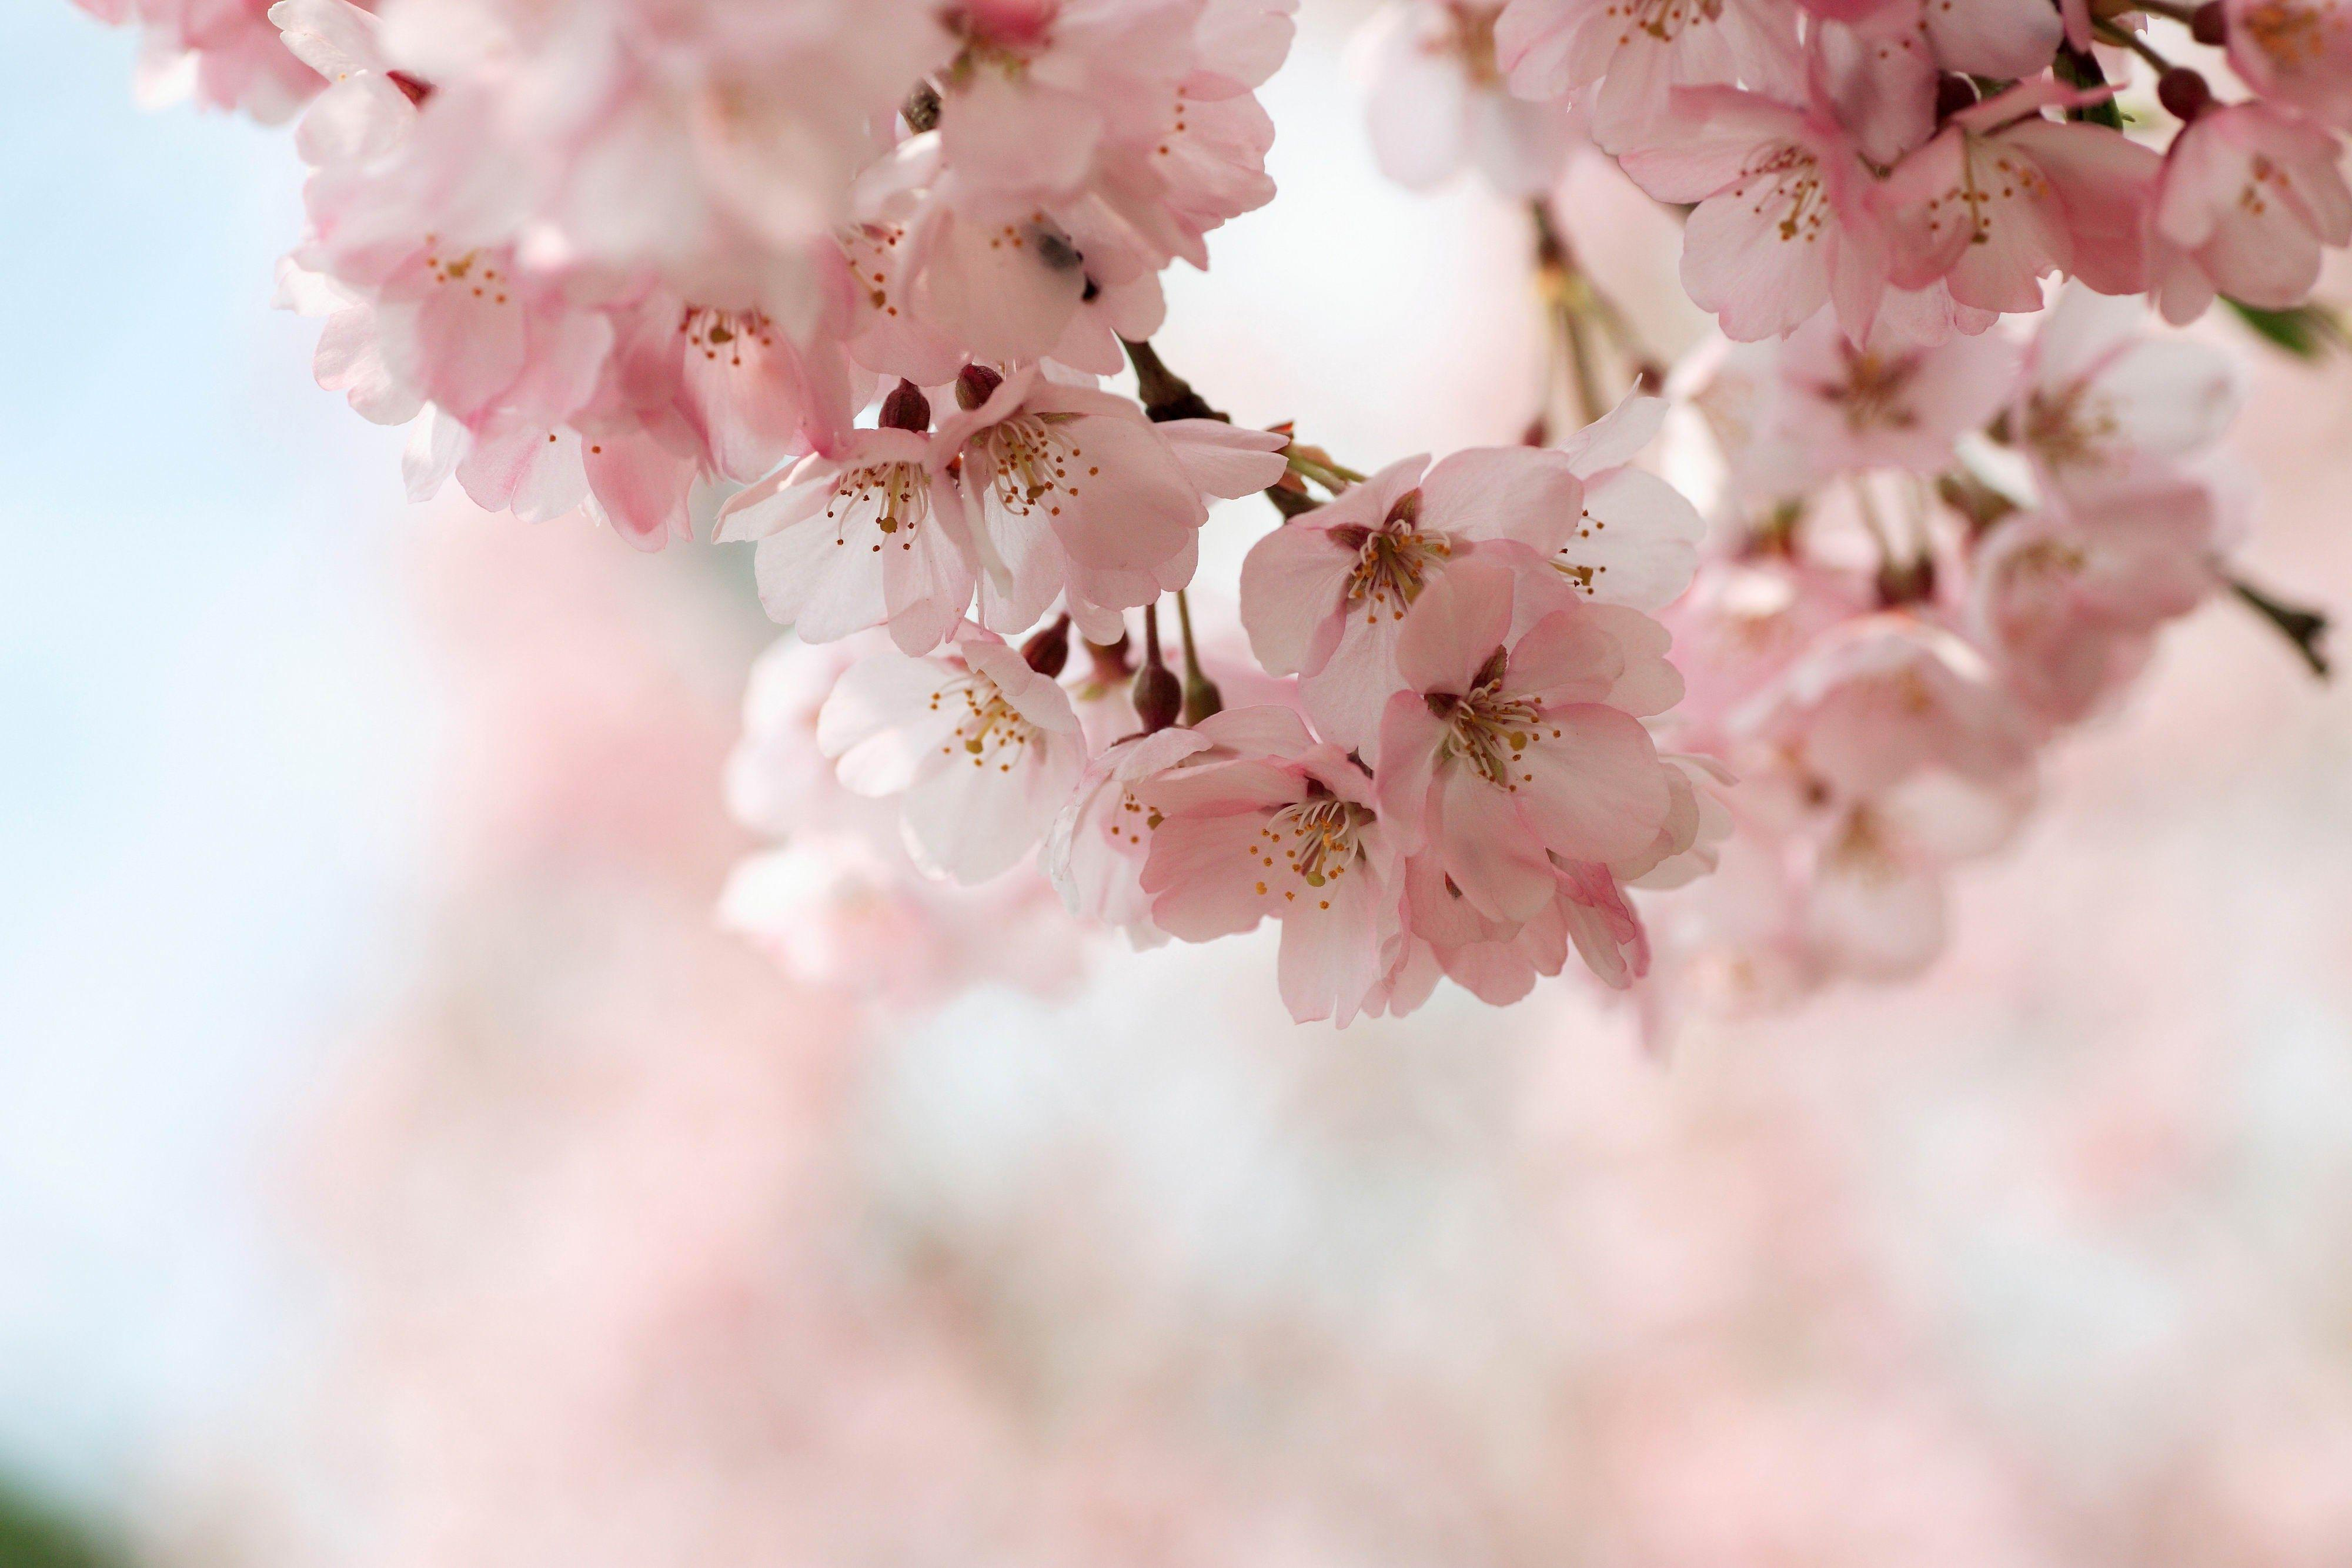 Cherry Blossom Wallpapers HD - Wallpaper Cave